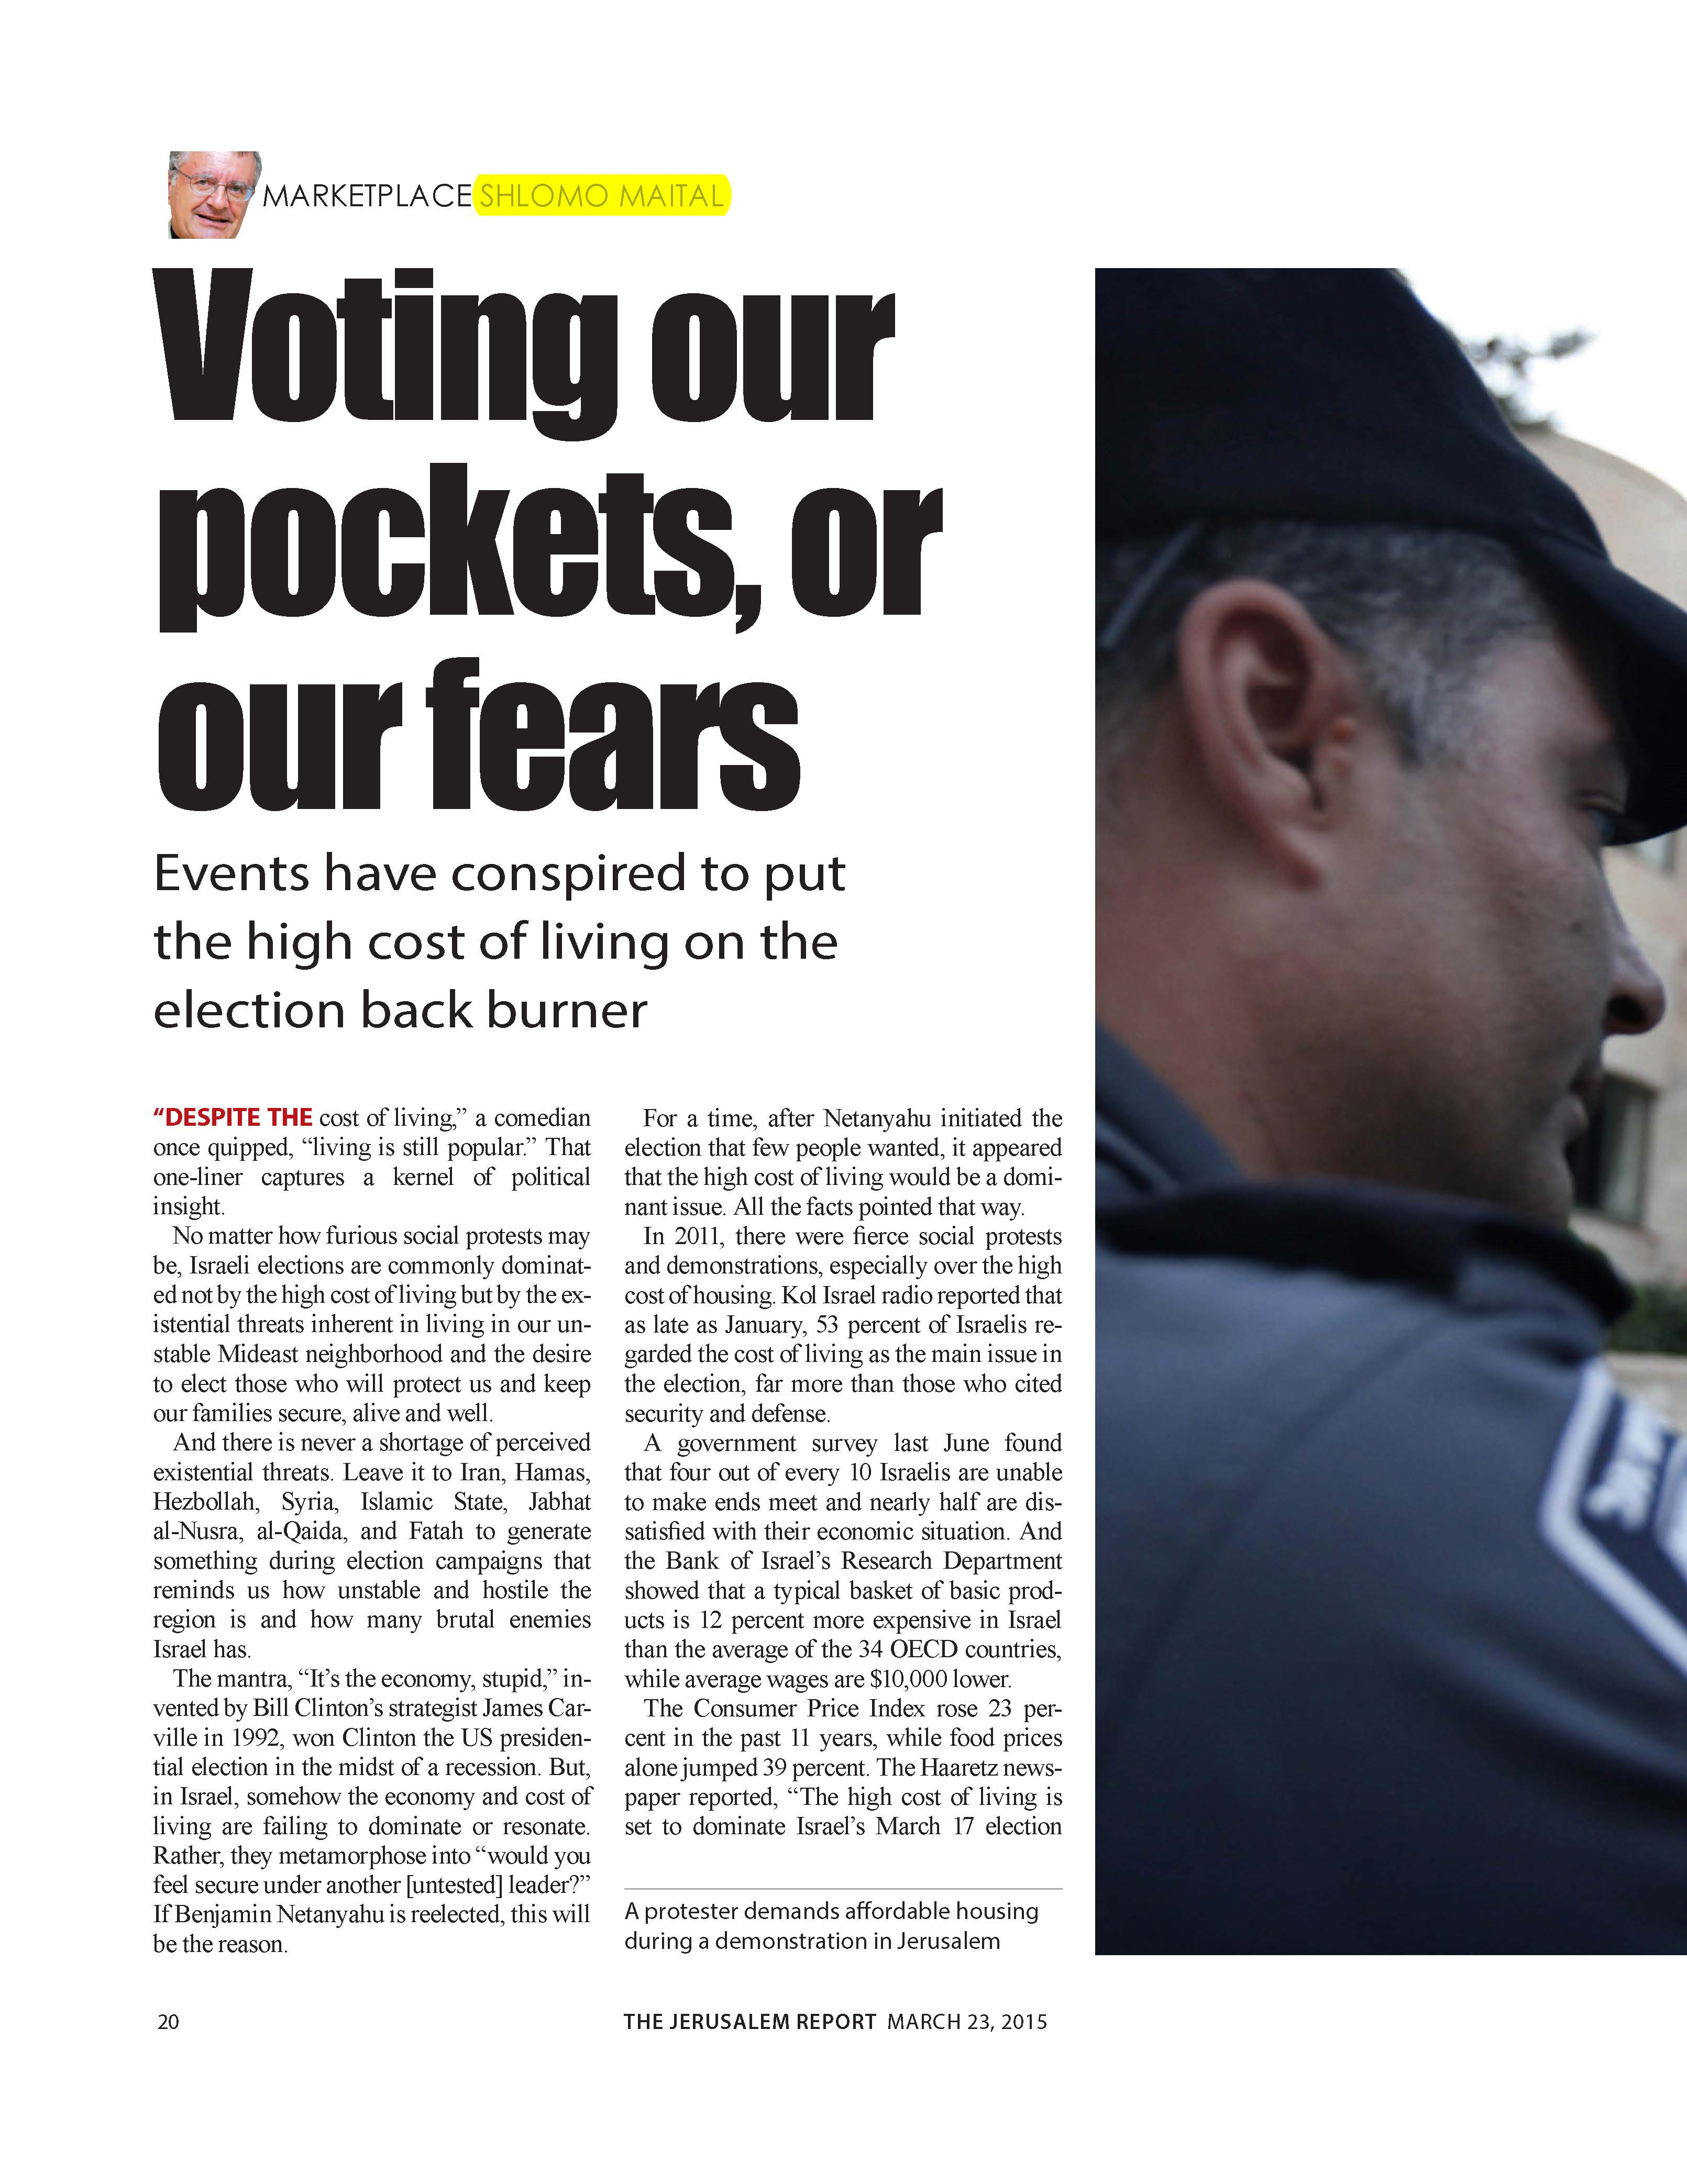 Voting our pockets, or our fears